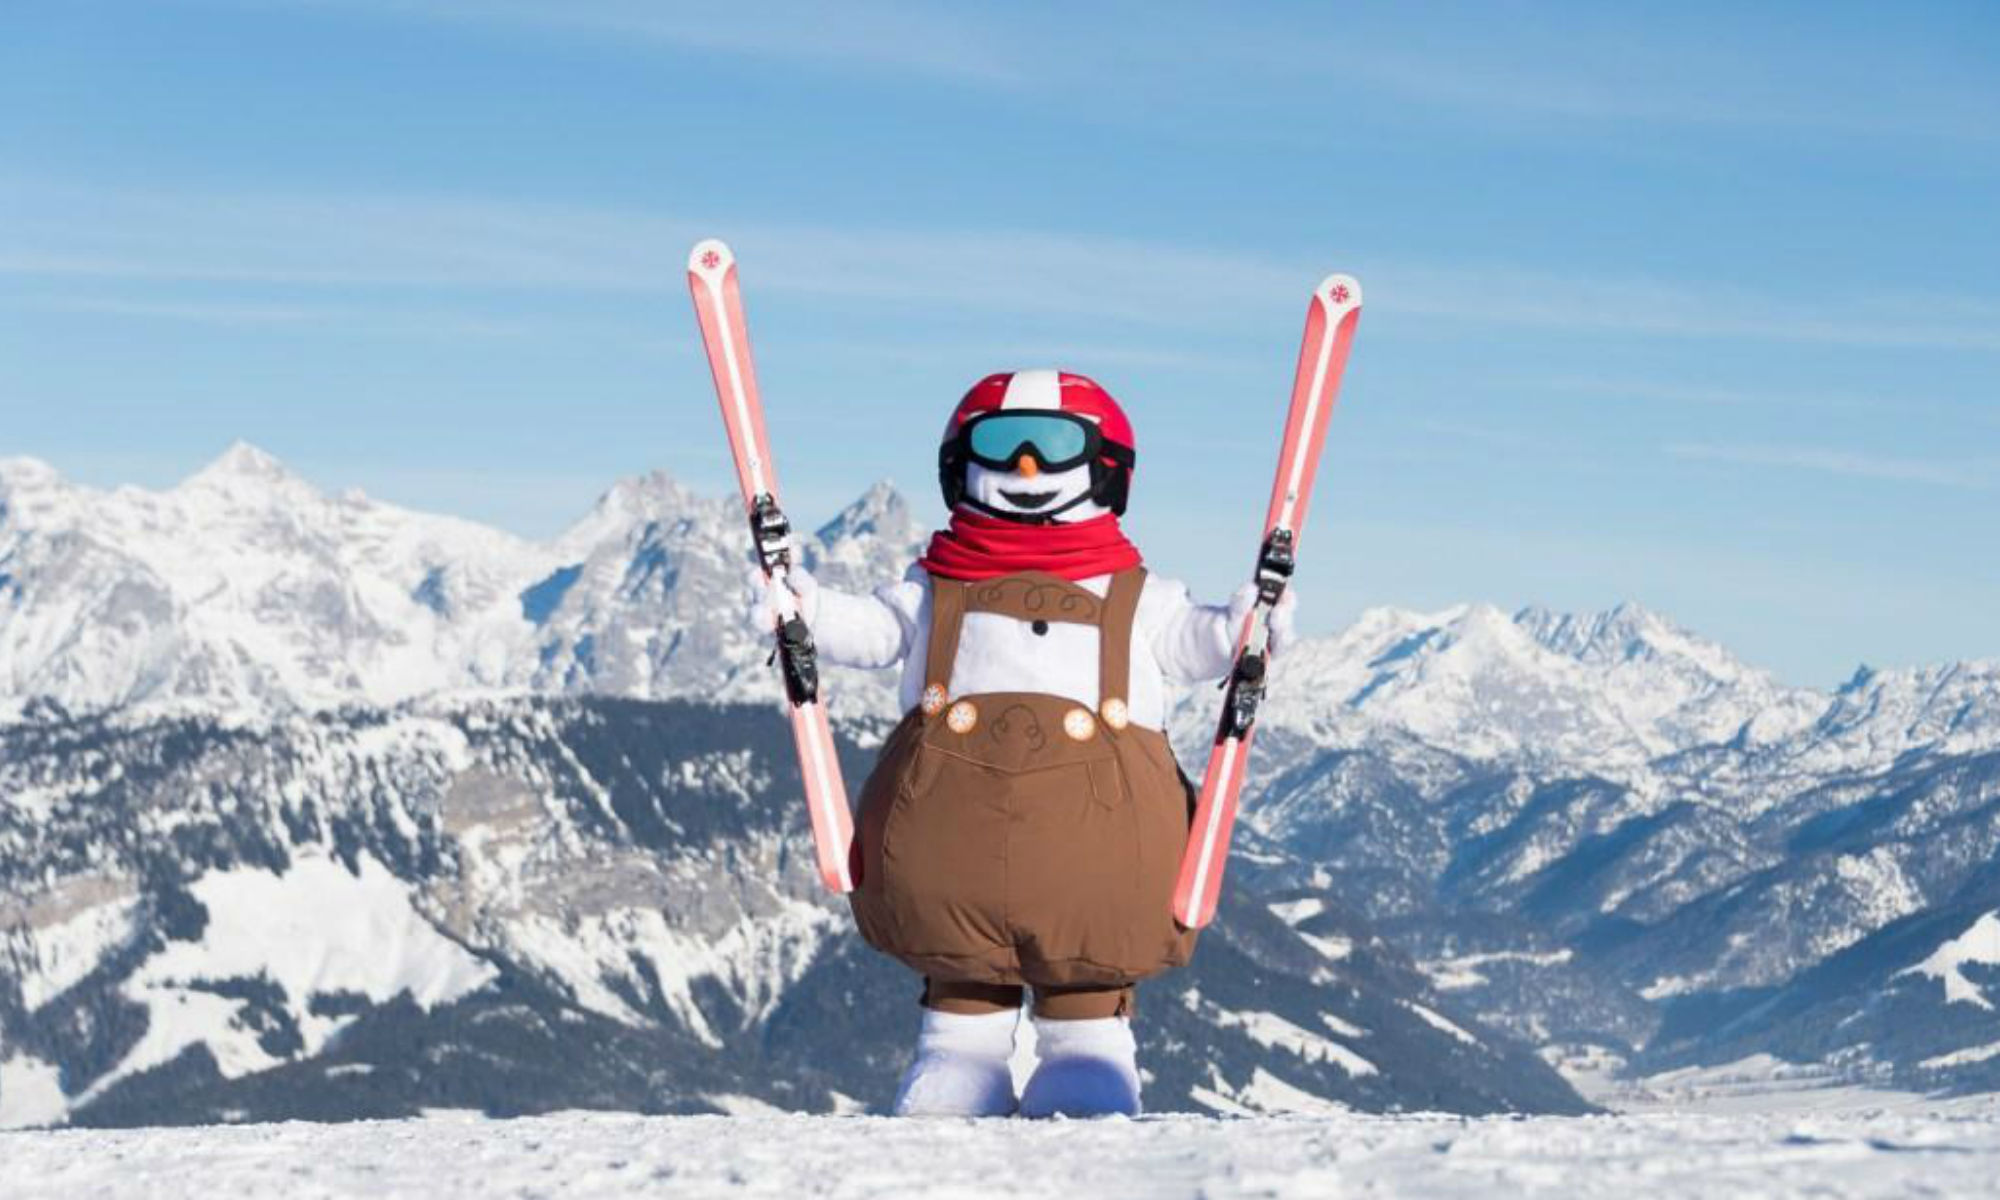 The mascot Valle standing on the piste with the mountain scenery of St. Johann in Tirol in the background.